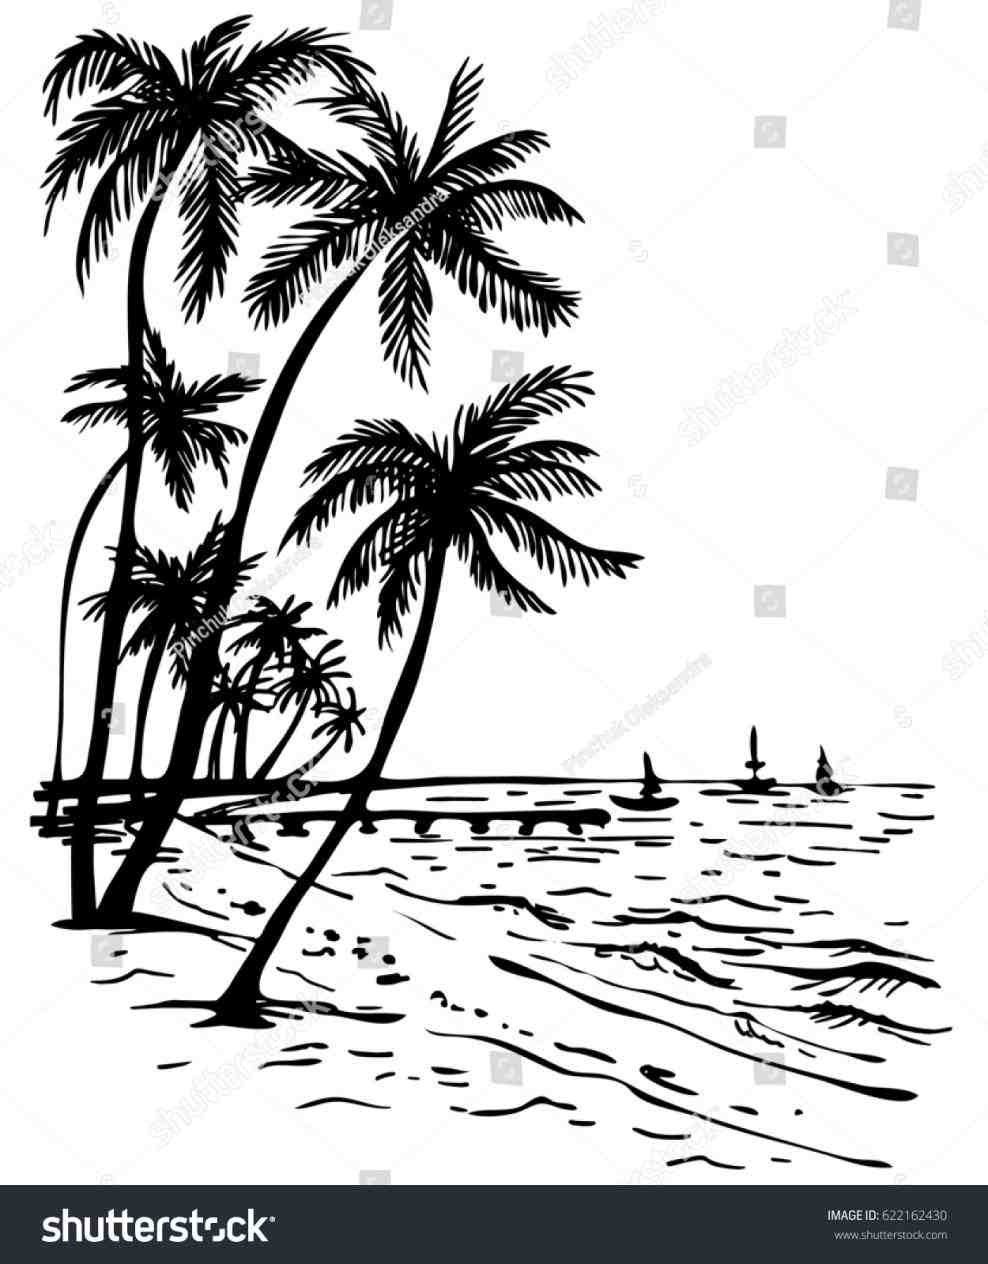 988x1264 Easy Lscape Drawinfo Easy Beach Sunset Drawing Black